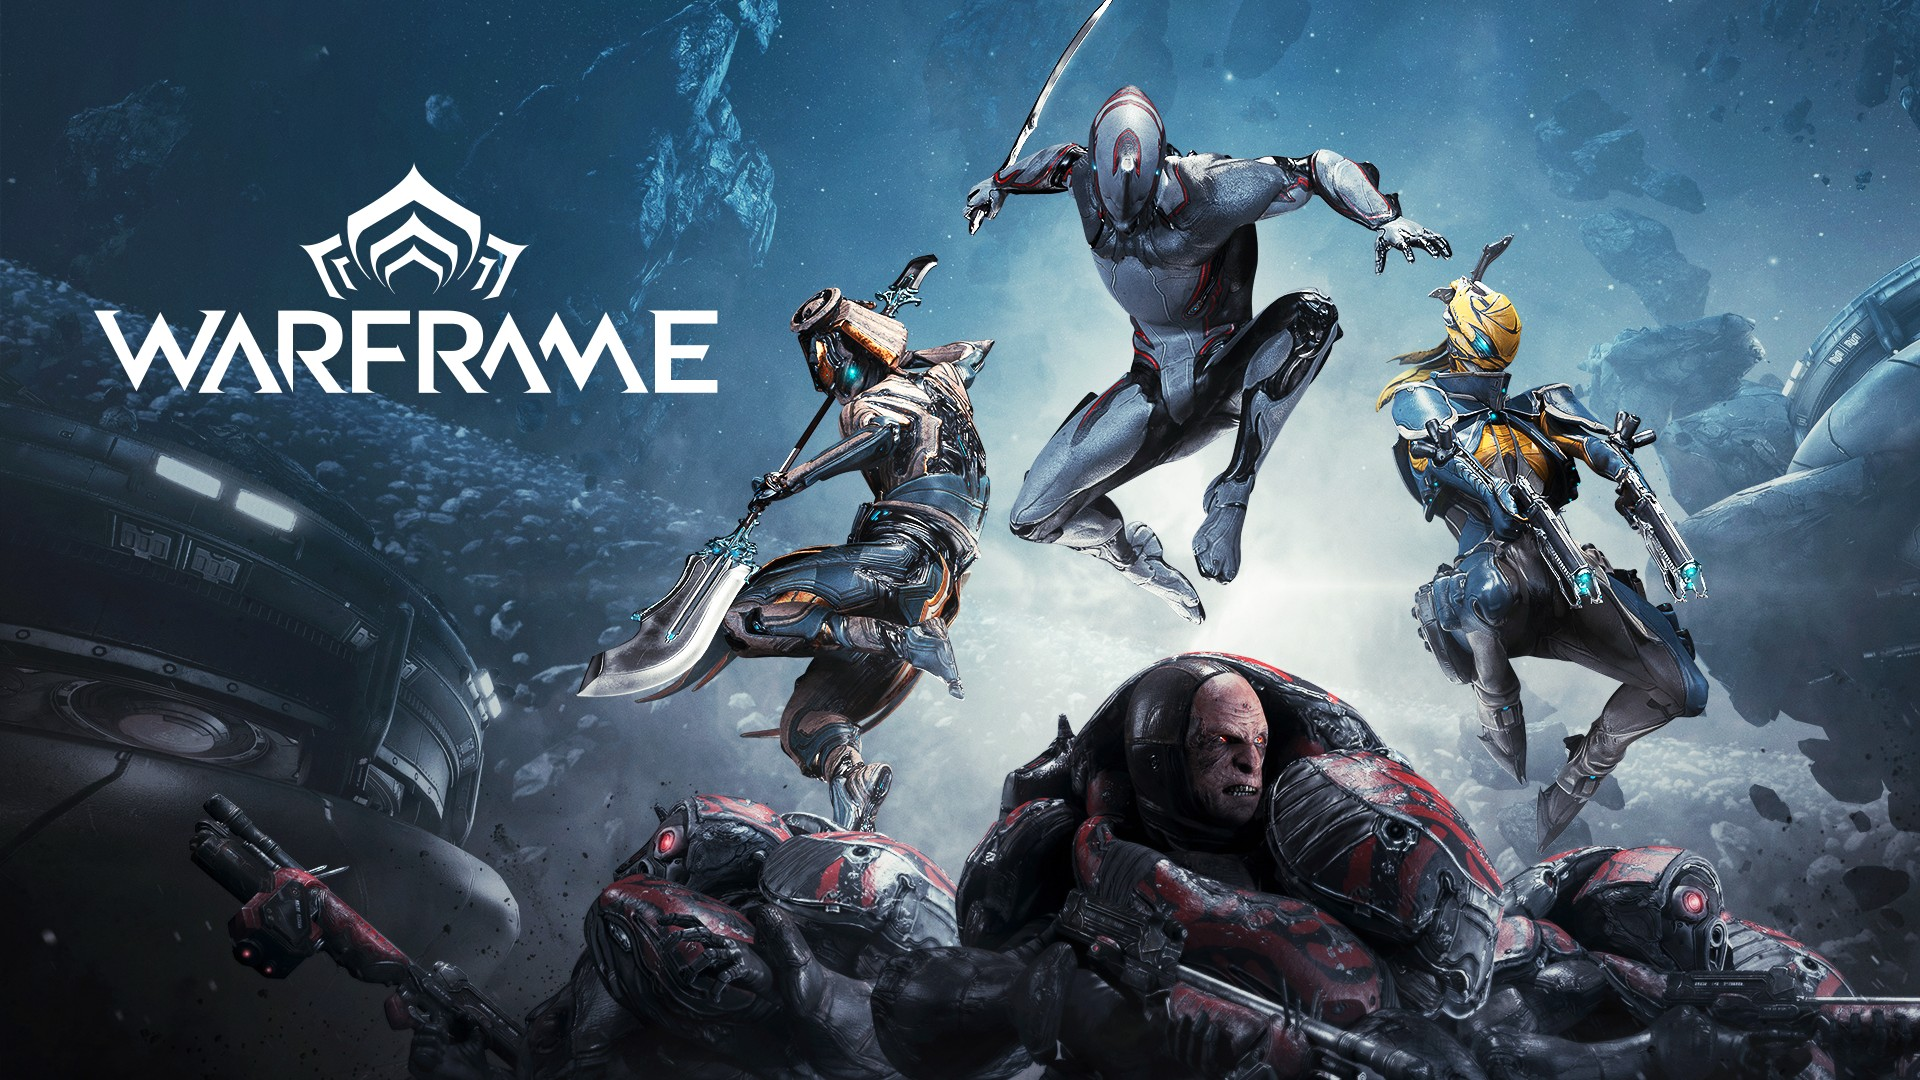 Video For Warframe Now Optimized for Xbox Series X|S and Call of the Tempestarii Update is Live